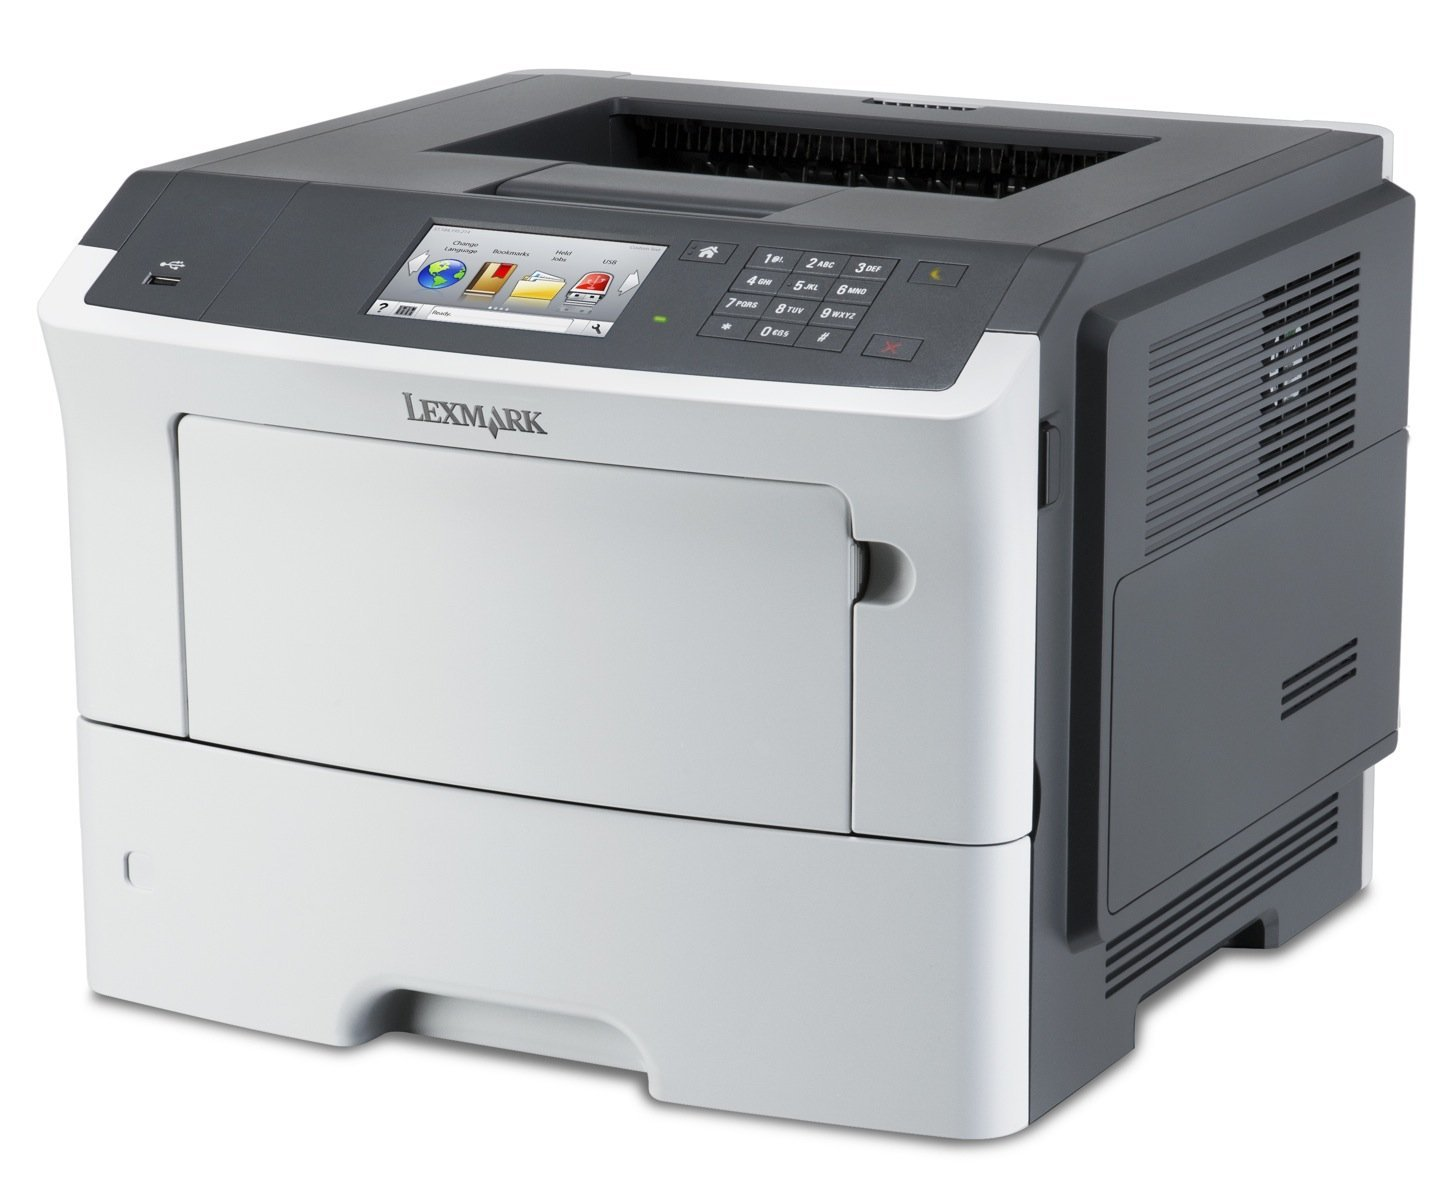 Lexmark MS610DE MonoChrome Laser Printer - 35S0500 by Lexmark (Image #3)